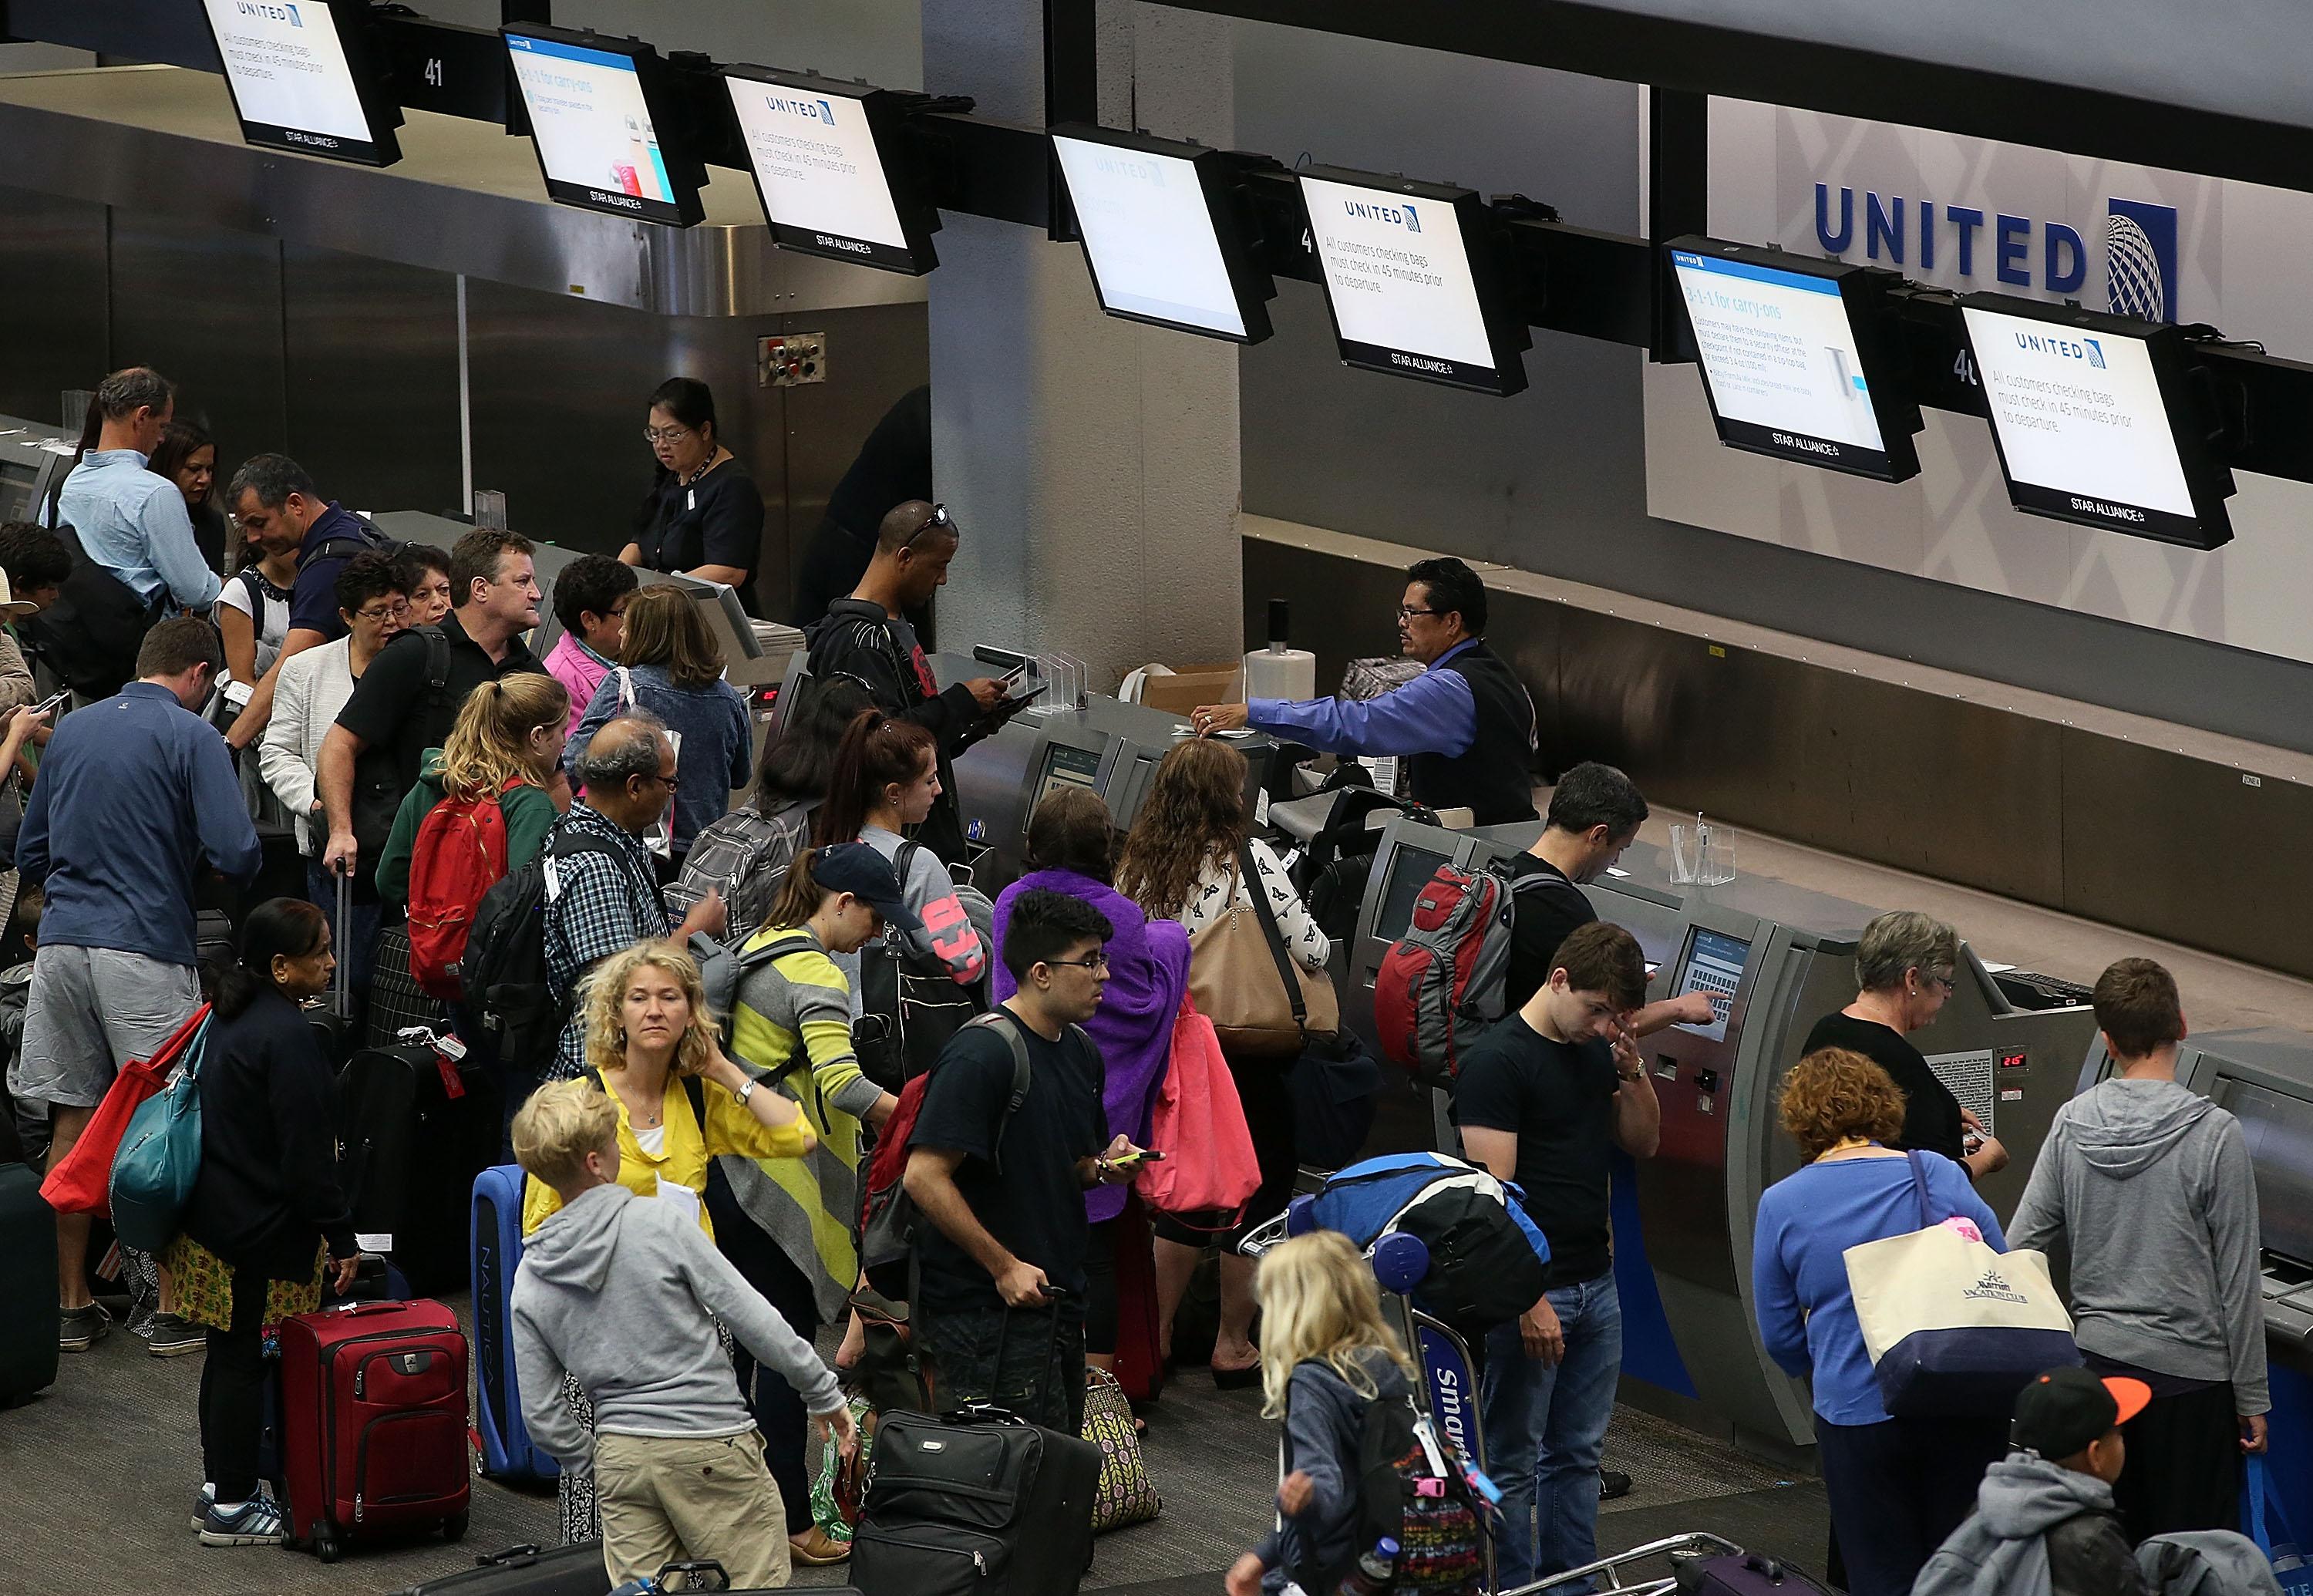 United Airlines passengers wait in line to check in for flights at San Francisco International Airport on July 8, 2015 in San Francisco, California.